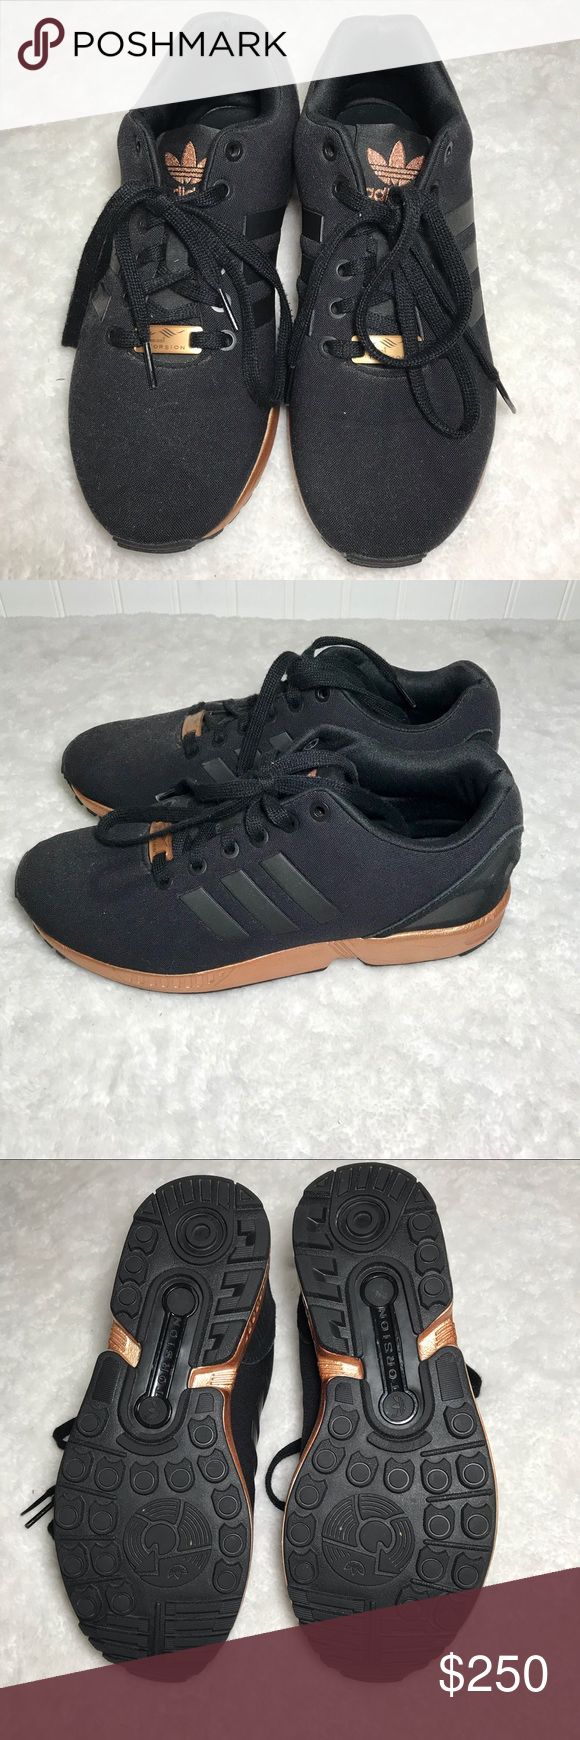 f5641ba84990f Adidas ZX Flux Rose Gold✨ Adidas ZX Flux Copper Rose Gold Worn once! Super